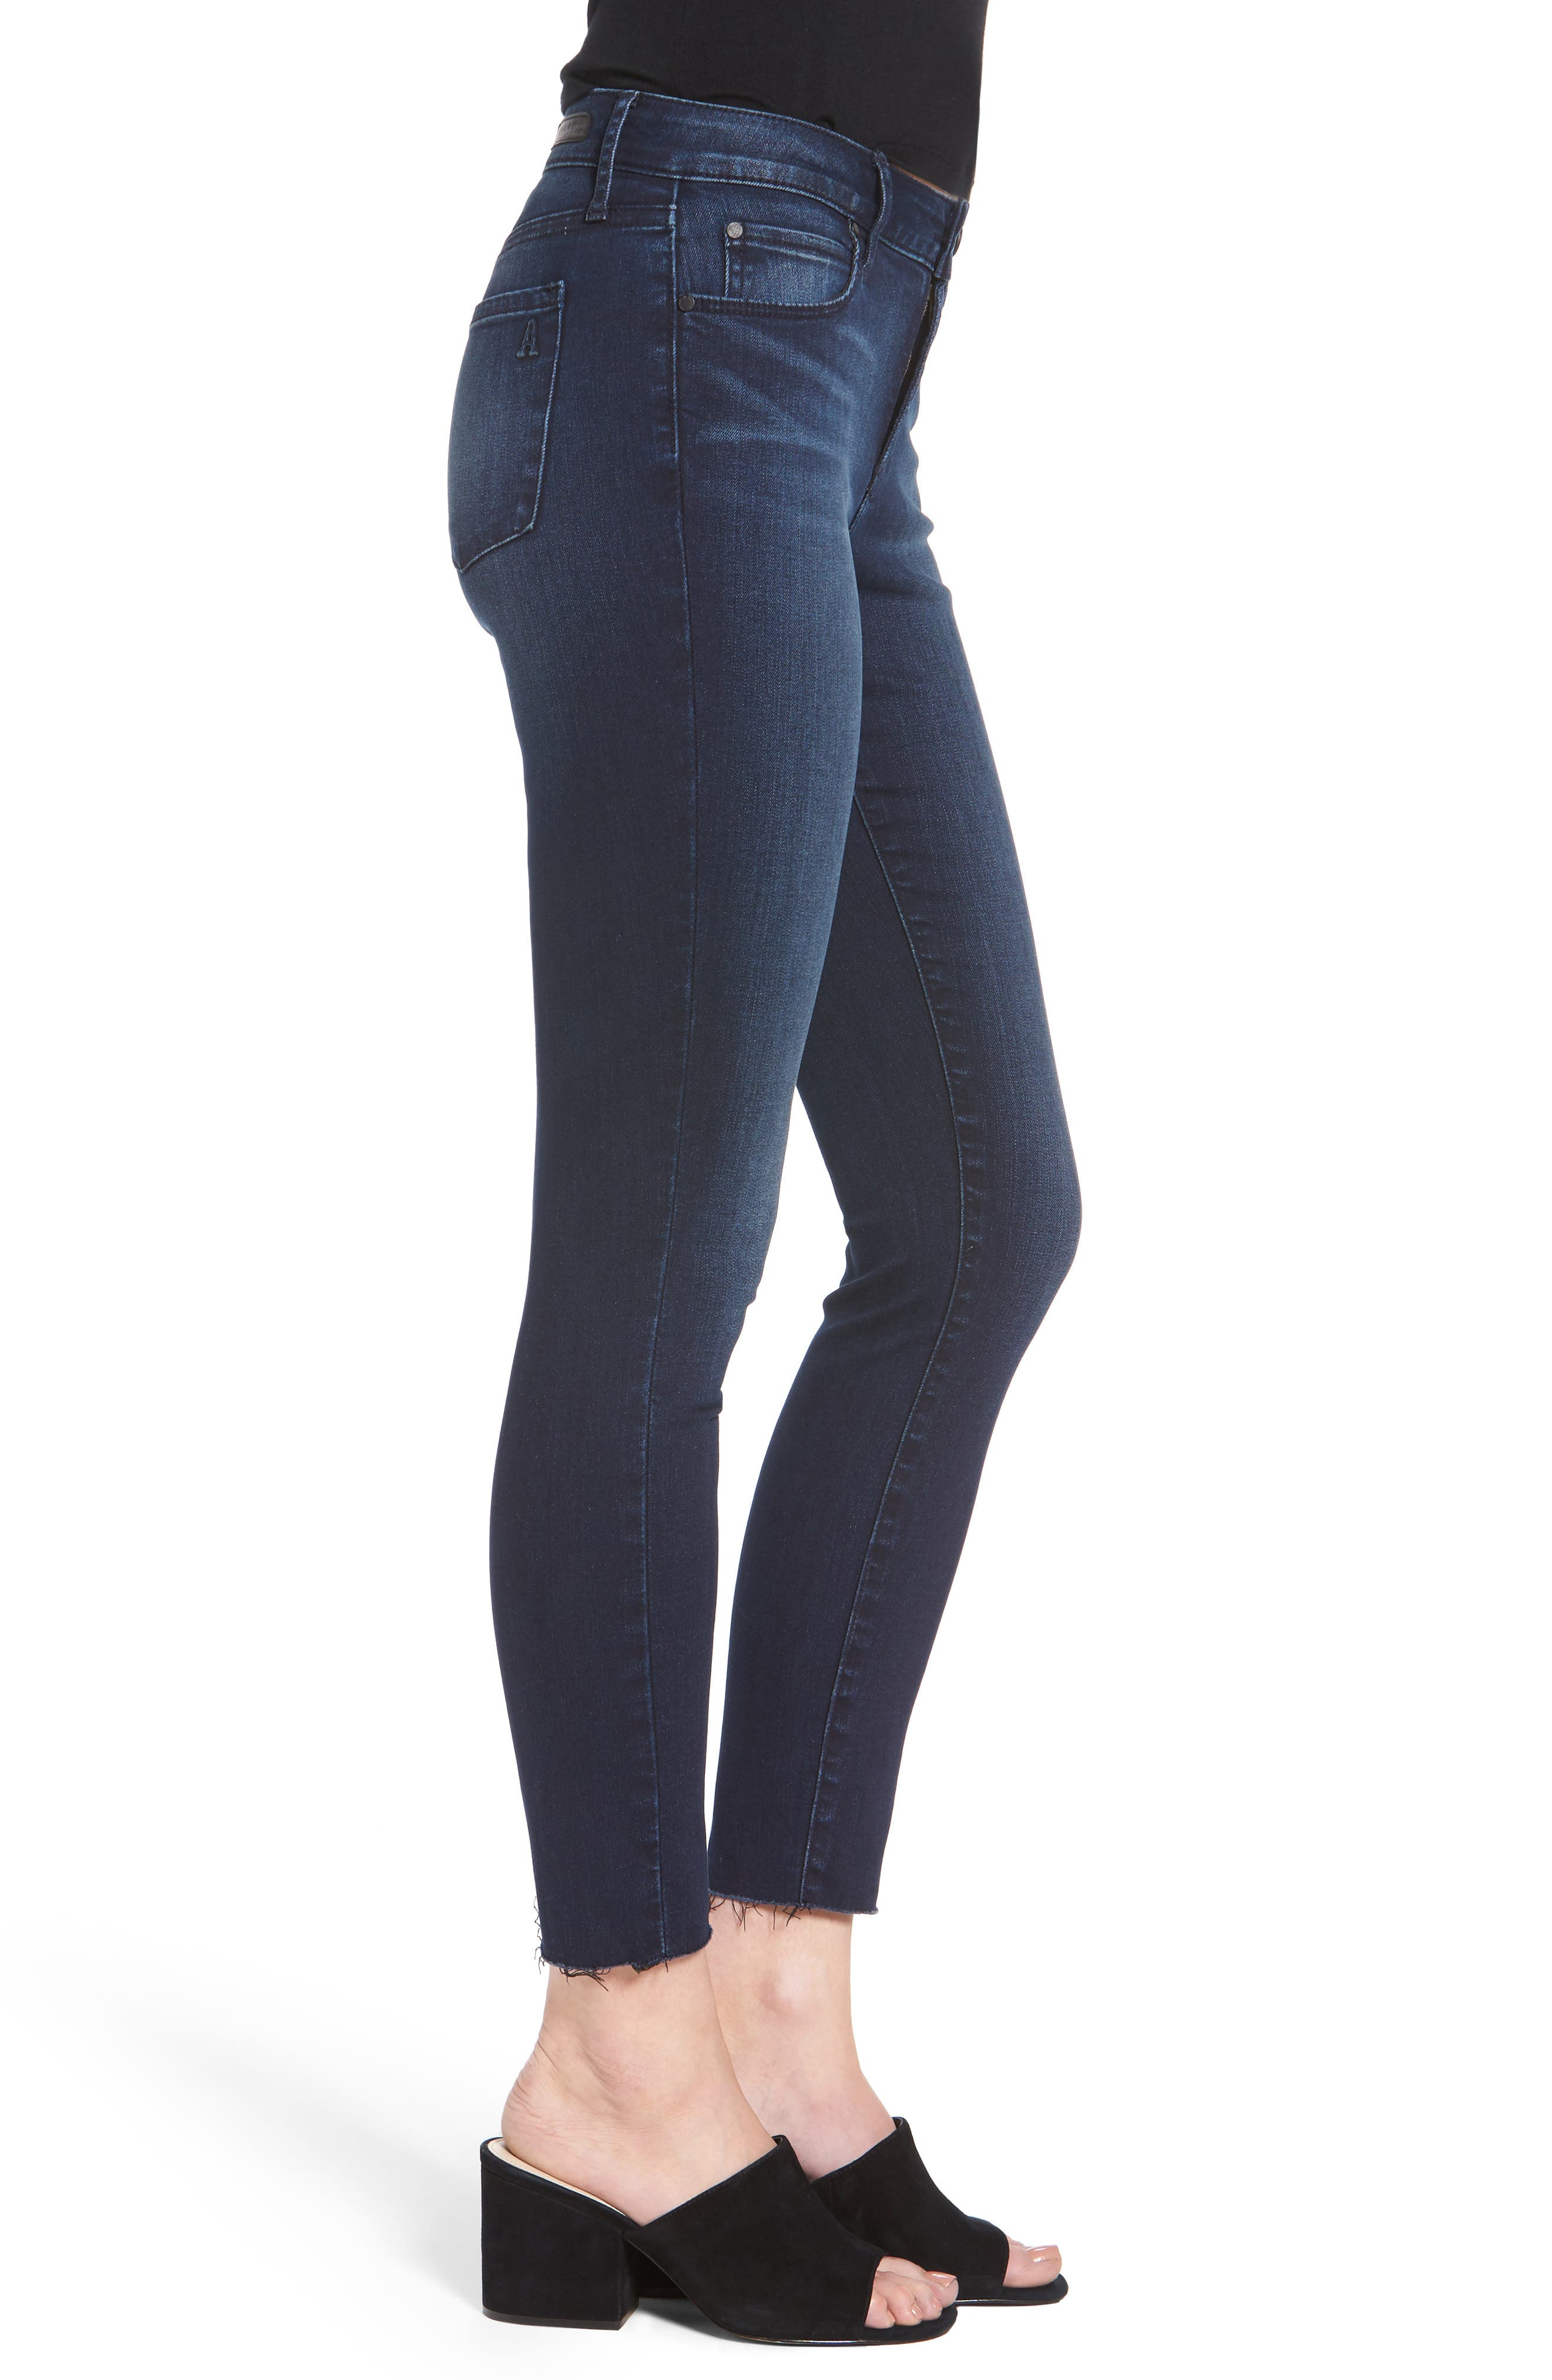 ARTICLES OF SOCIETY,                             Carly Crop Skinny Jeans,                             Alternate thumbnail 3, color,                             499